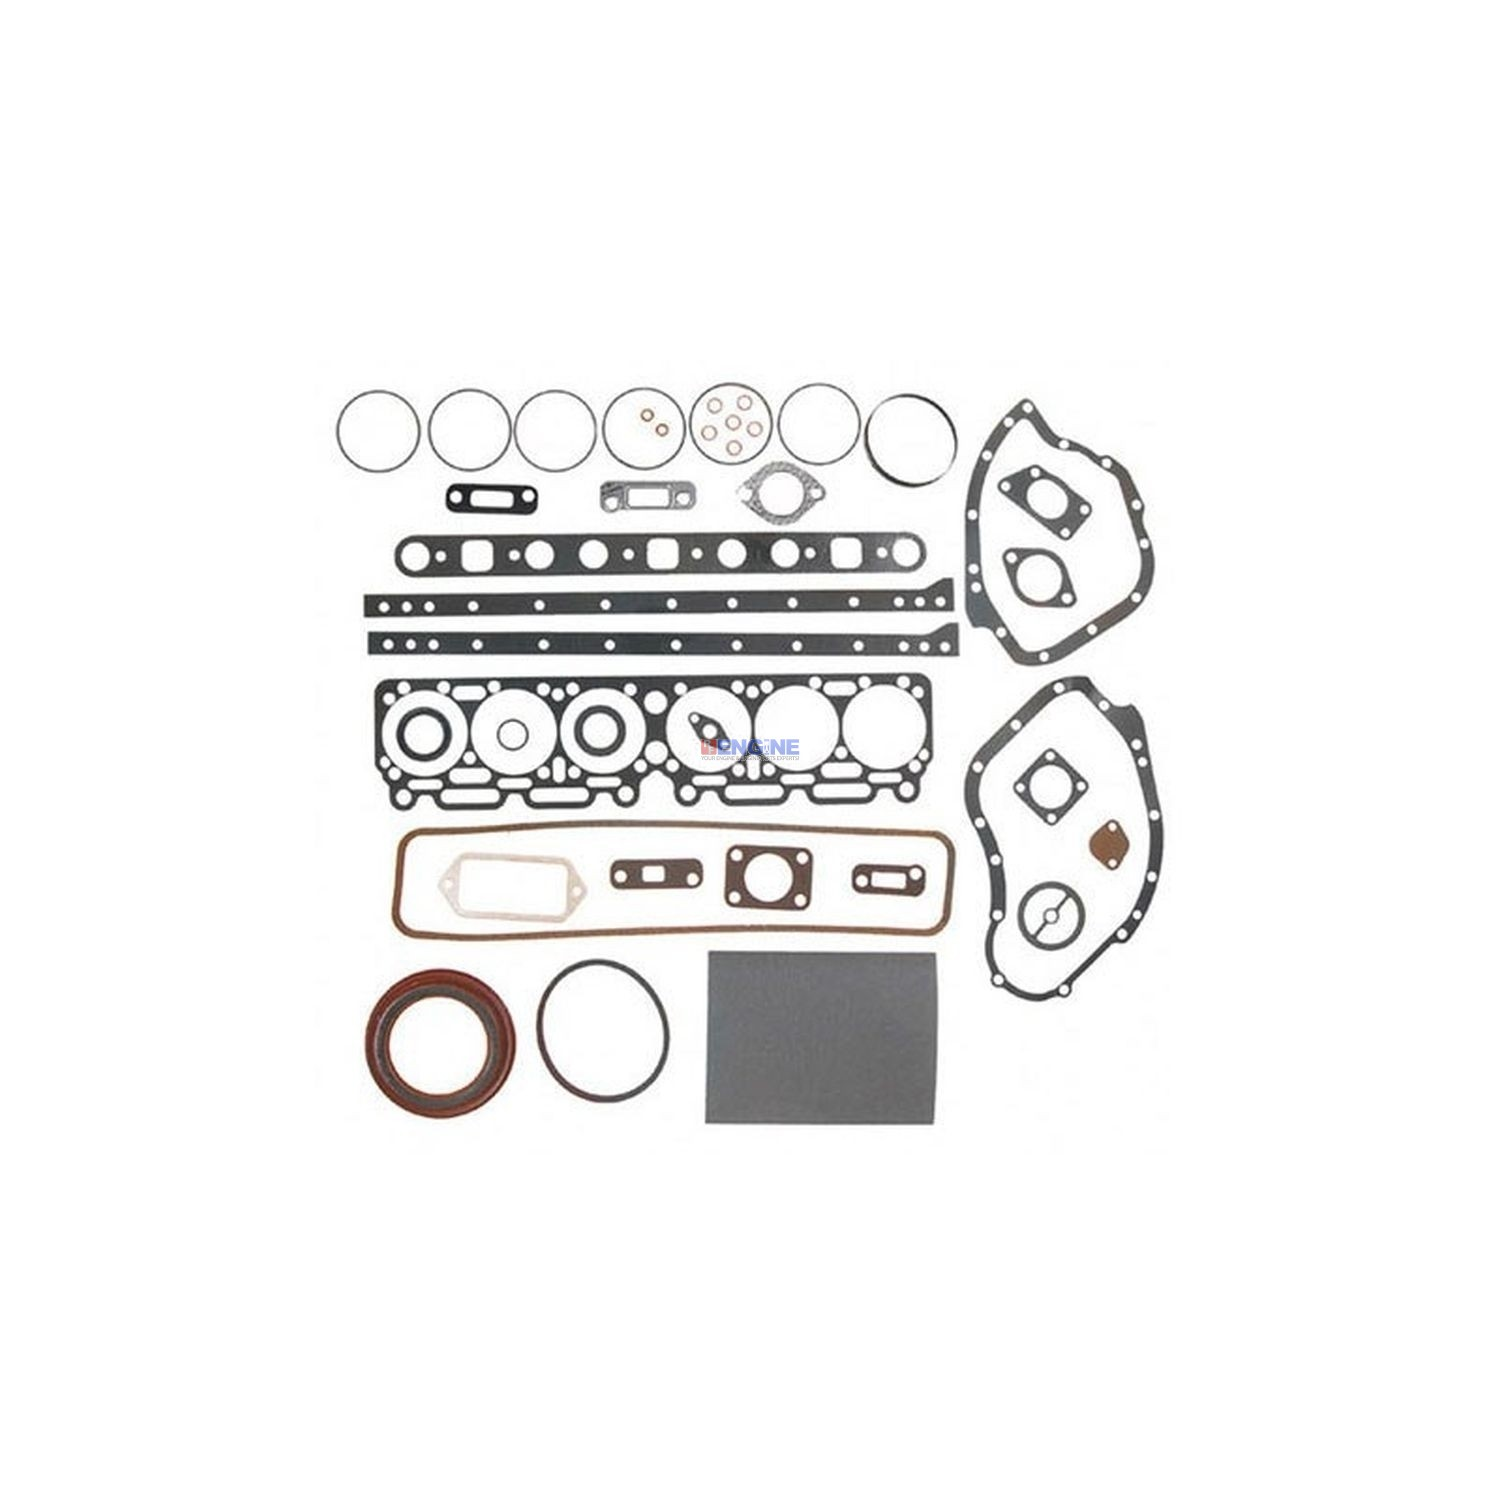 R F Engine Fits Allis Chalmers D262 Engine Overhaul Kit